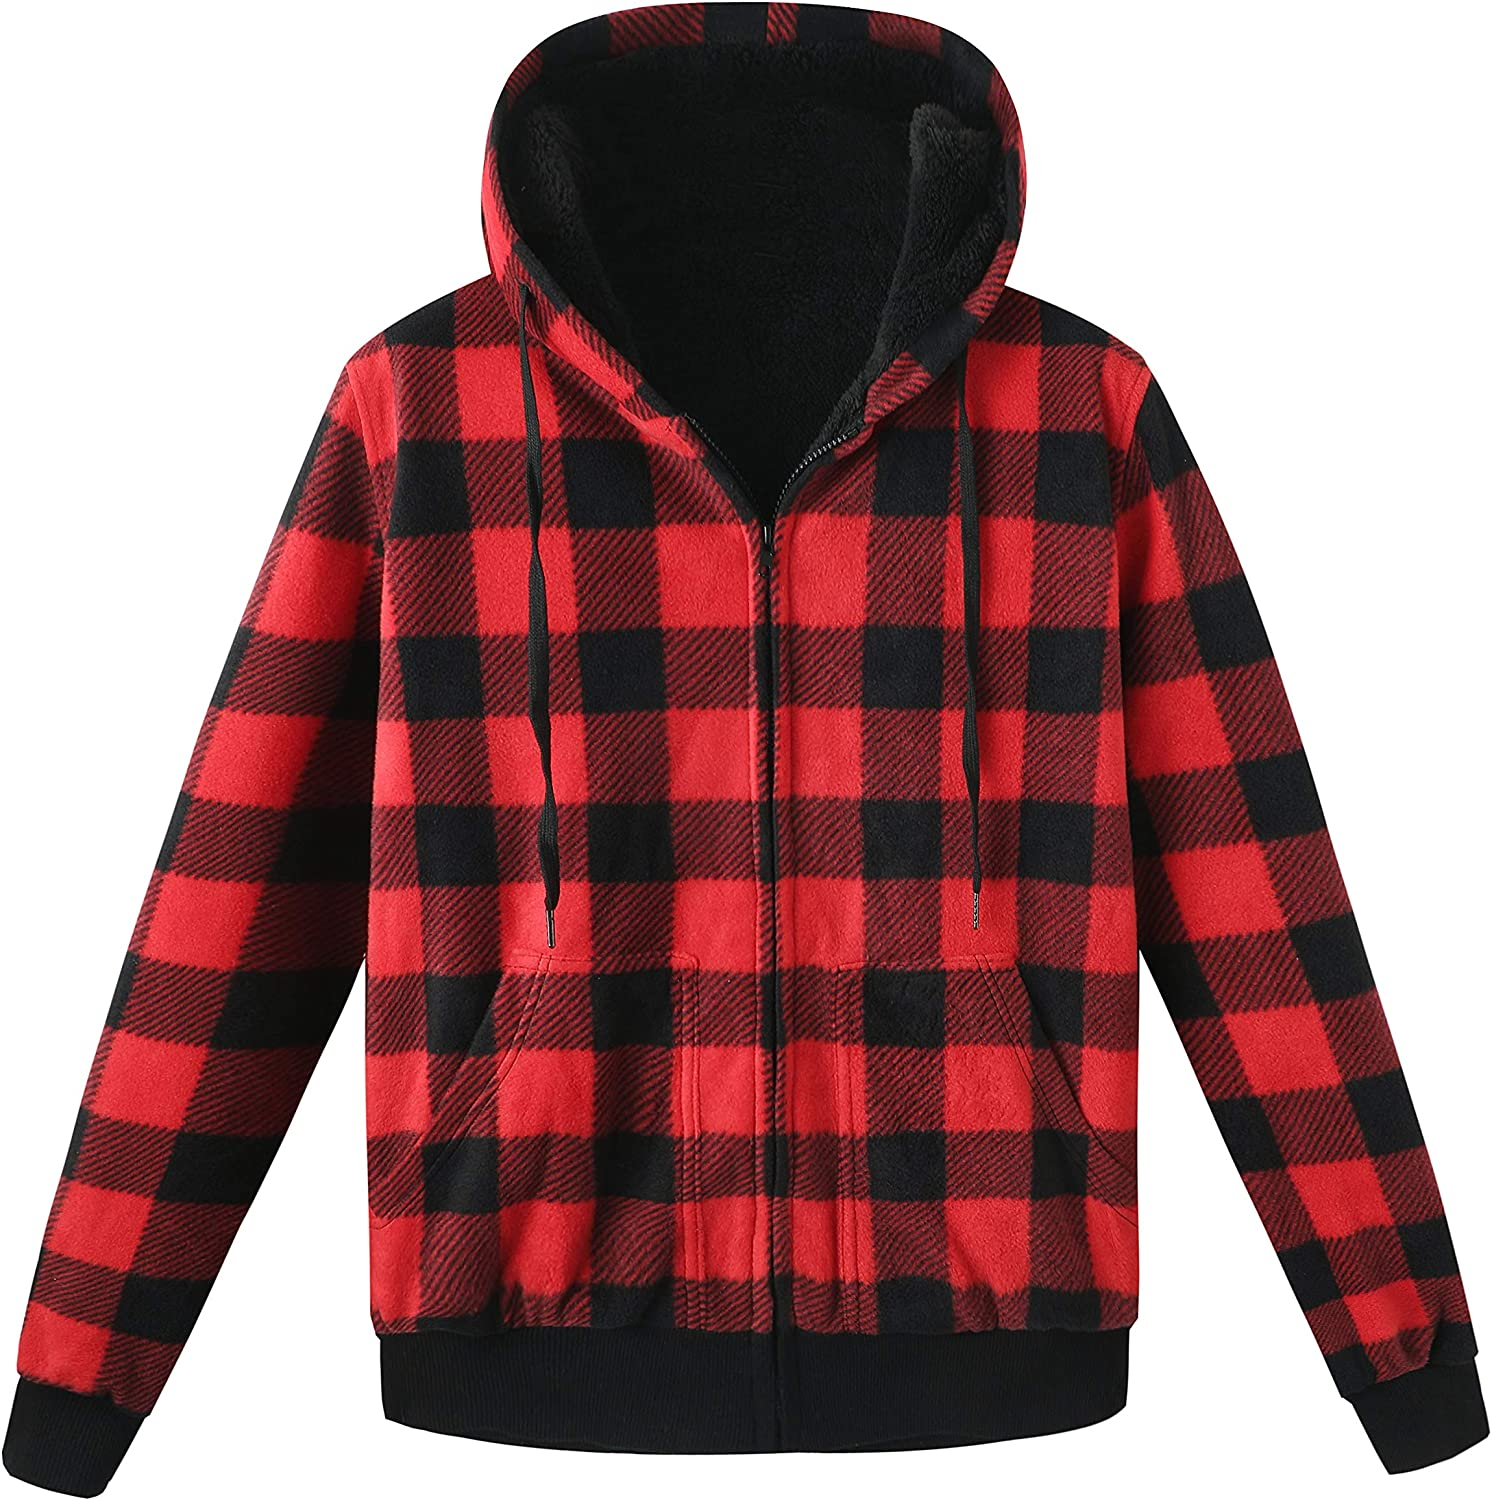 ZENTHACE Men's Thicken Sherpa free Lined Checkered Flannel Shi Soldering Hoodie